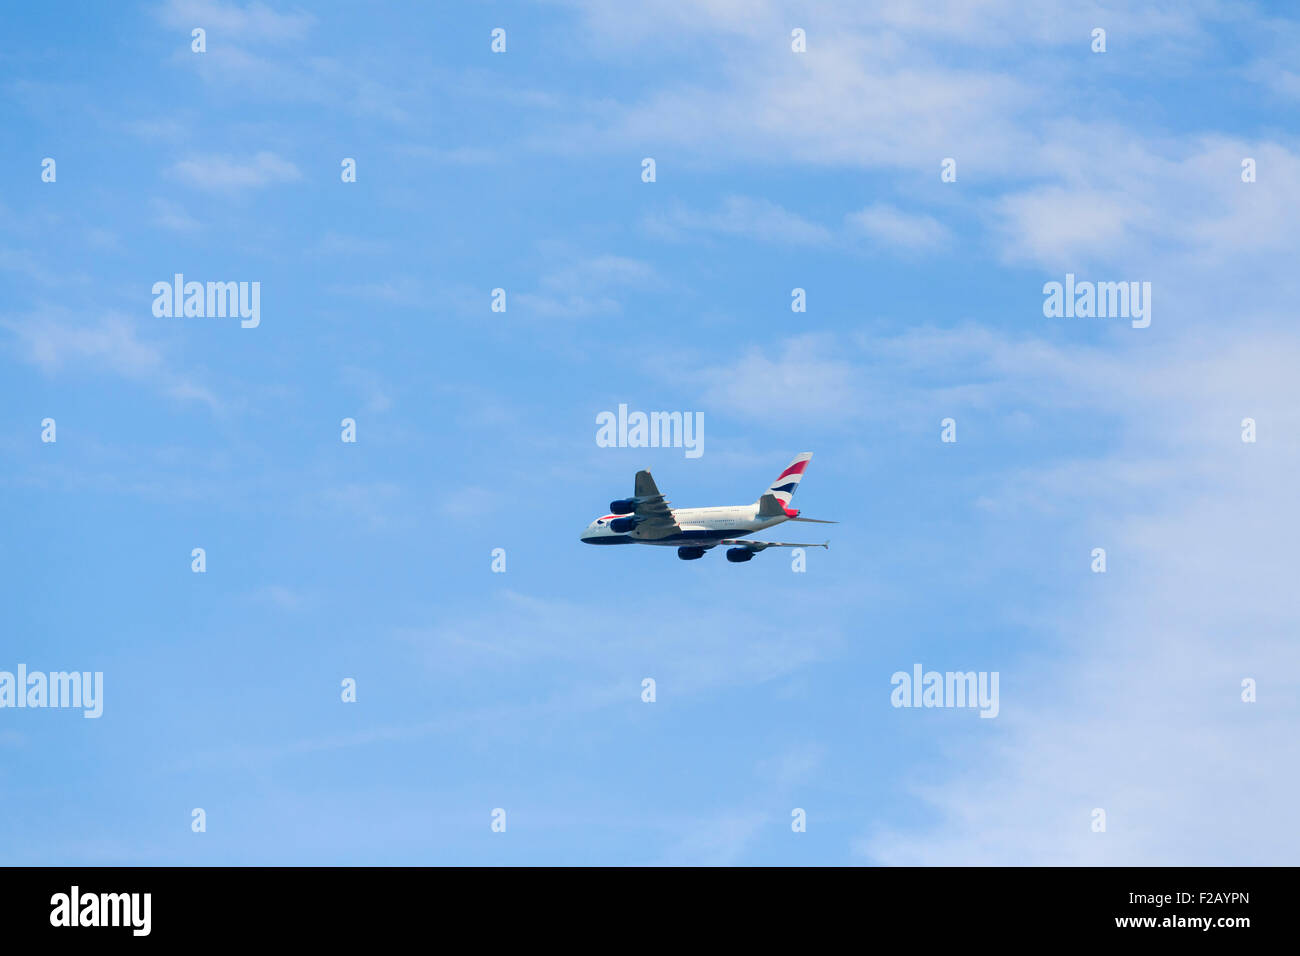 British Airways Airbus A380 flying over Windsor out of London Heathrow, England, UK - Stock Image